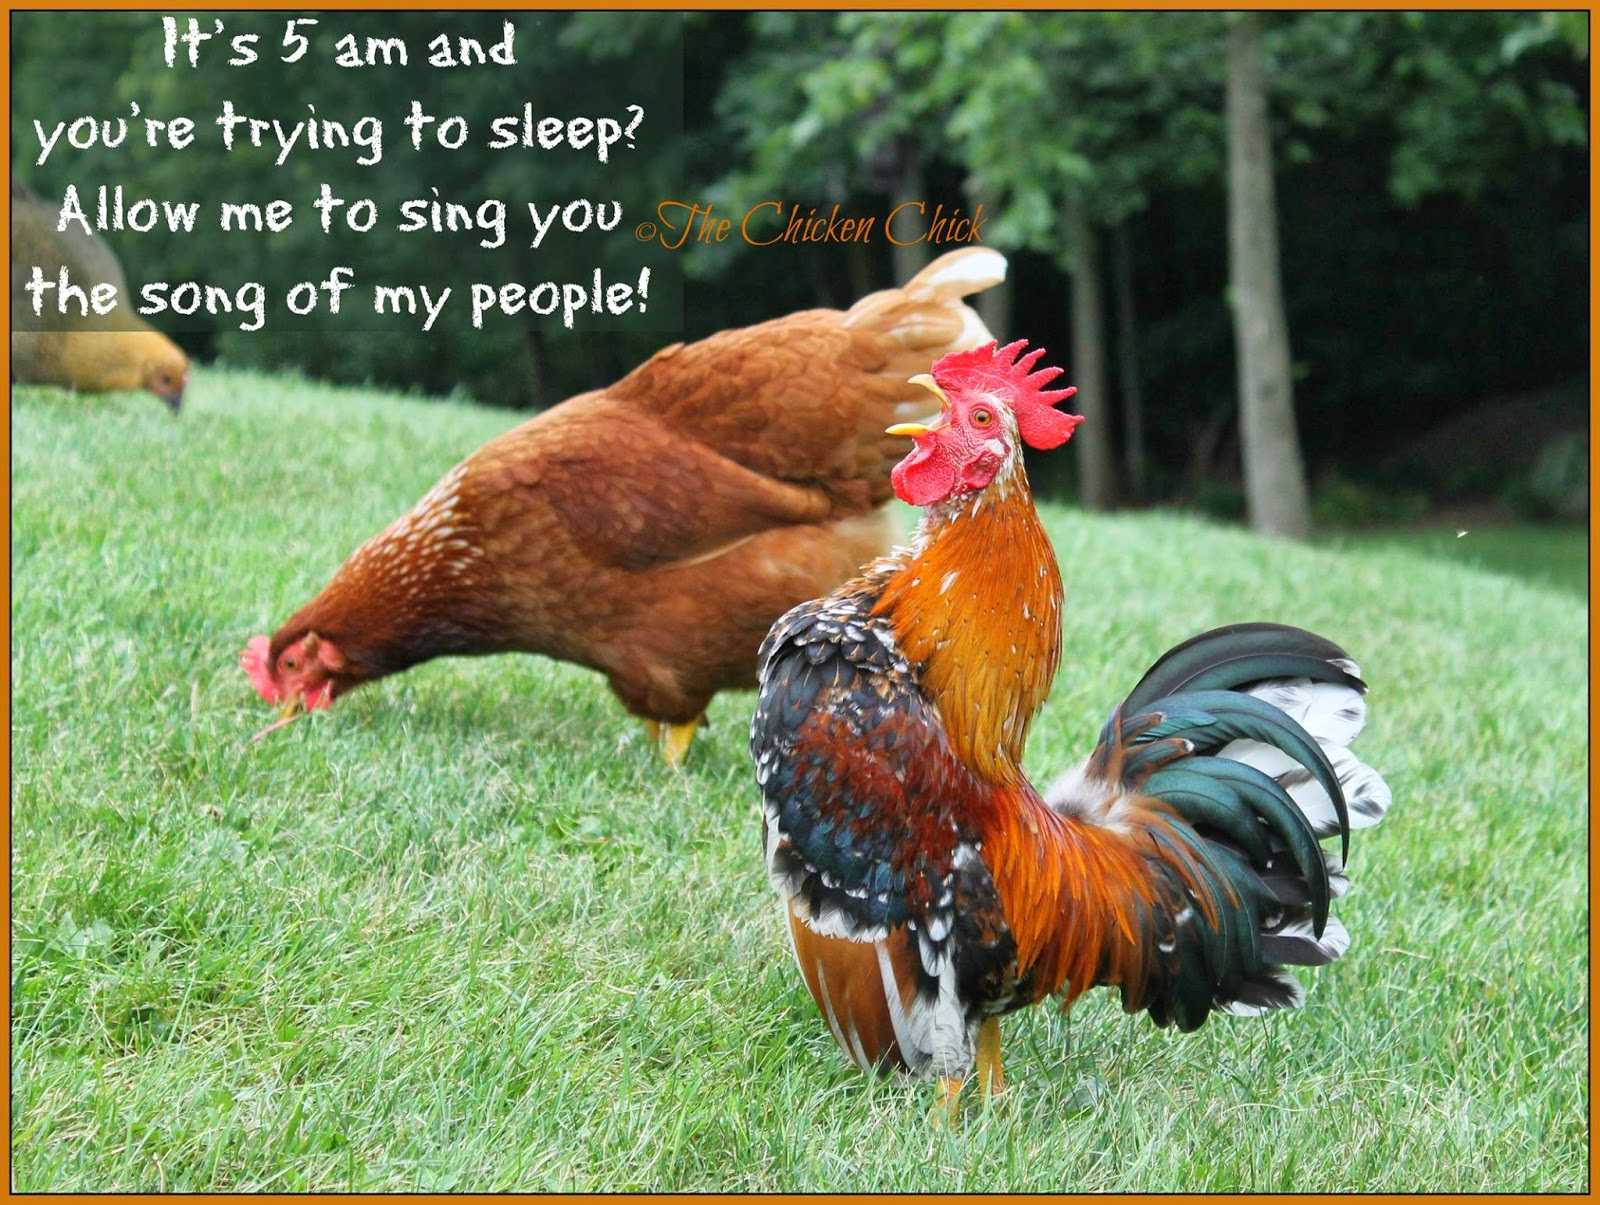 It's 5am and you're trying to sleep? Allow me to sing you the song of my people!